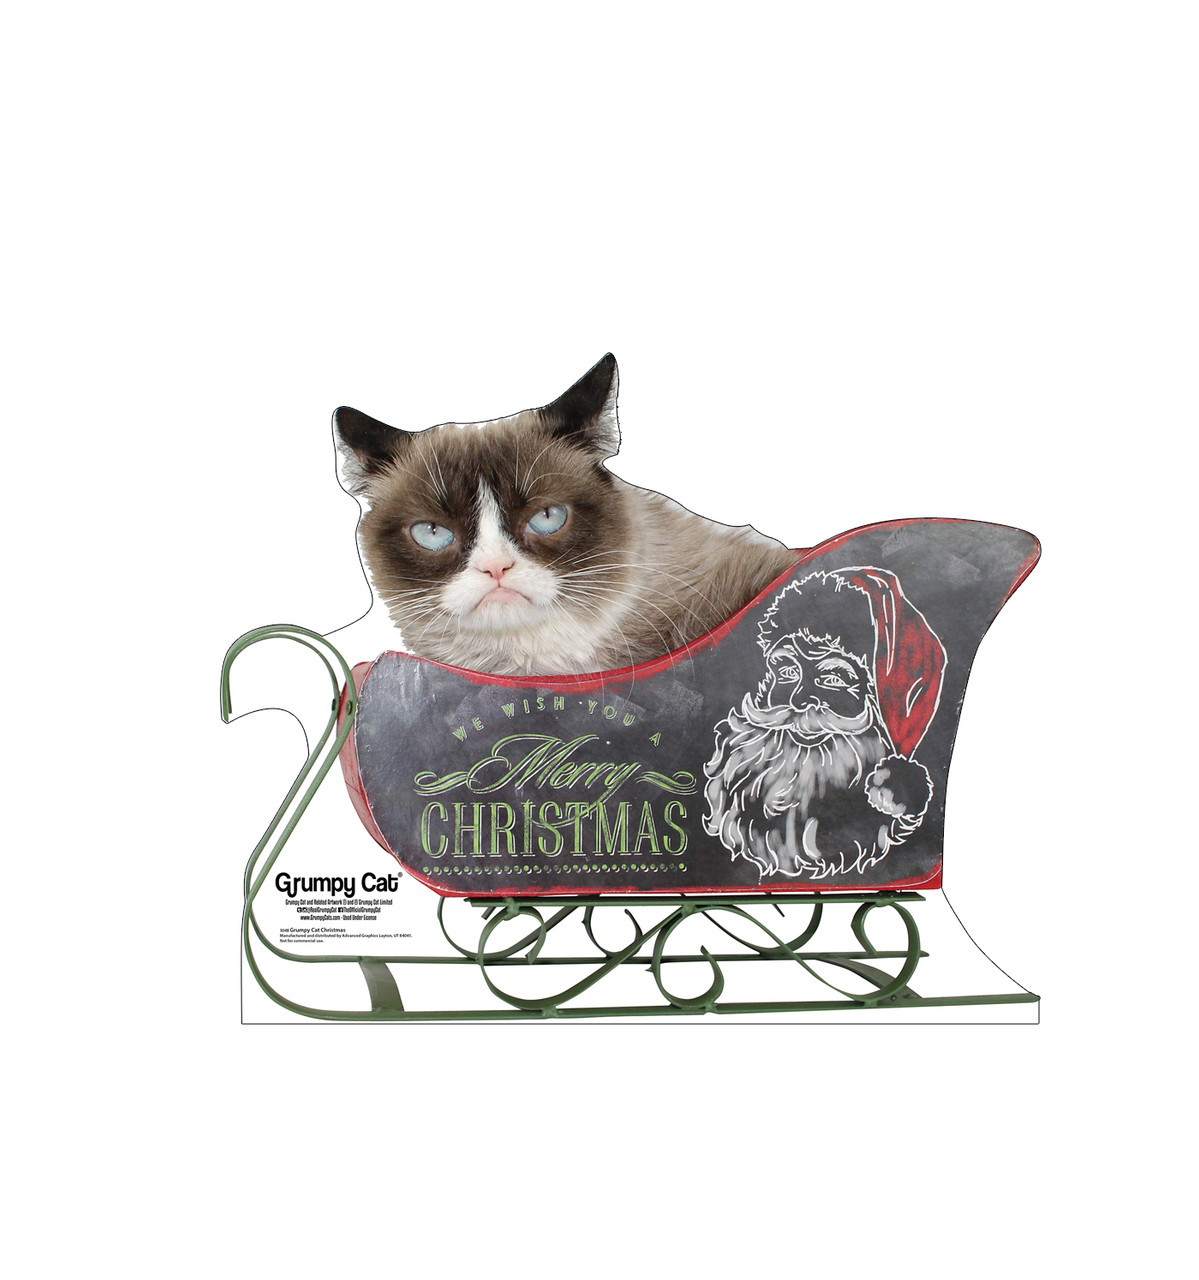 Grumpy Cat - Christmas 3048